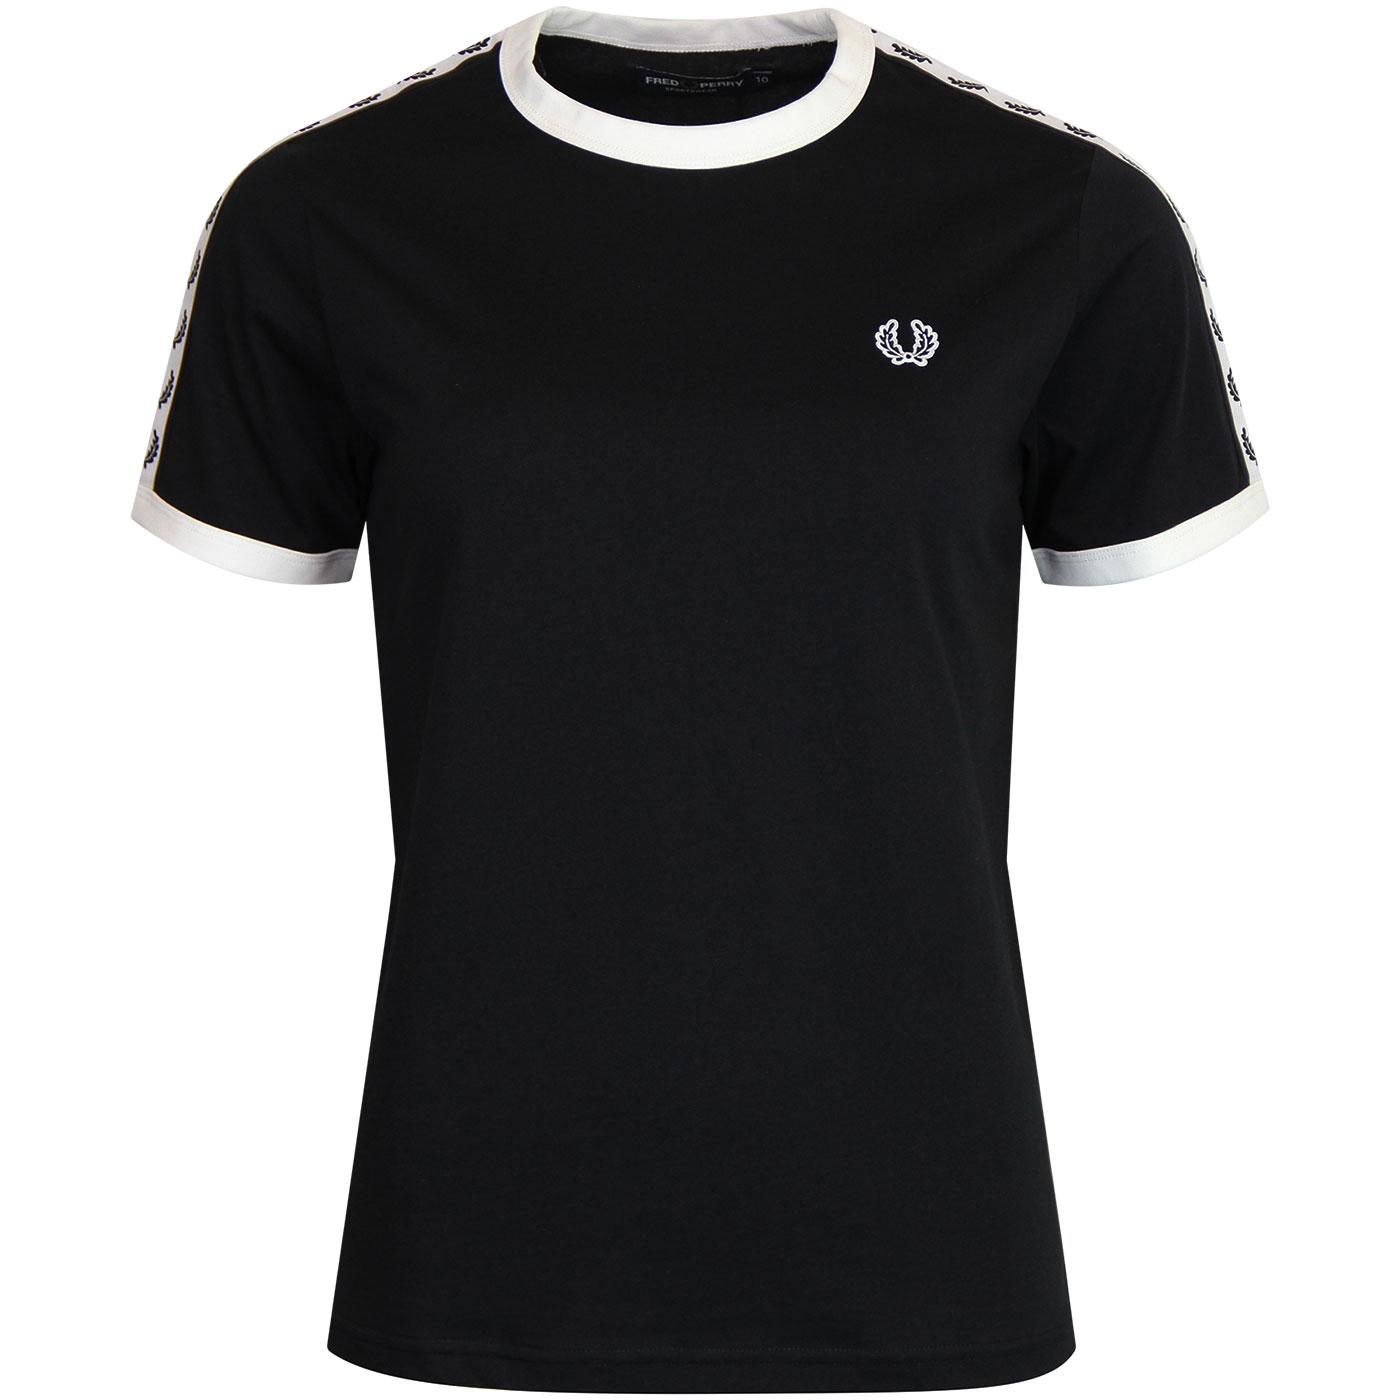 FRED PERRY Women's Taped Contrast Ringer Tee BLACK